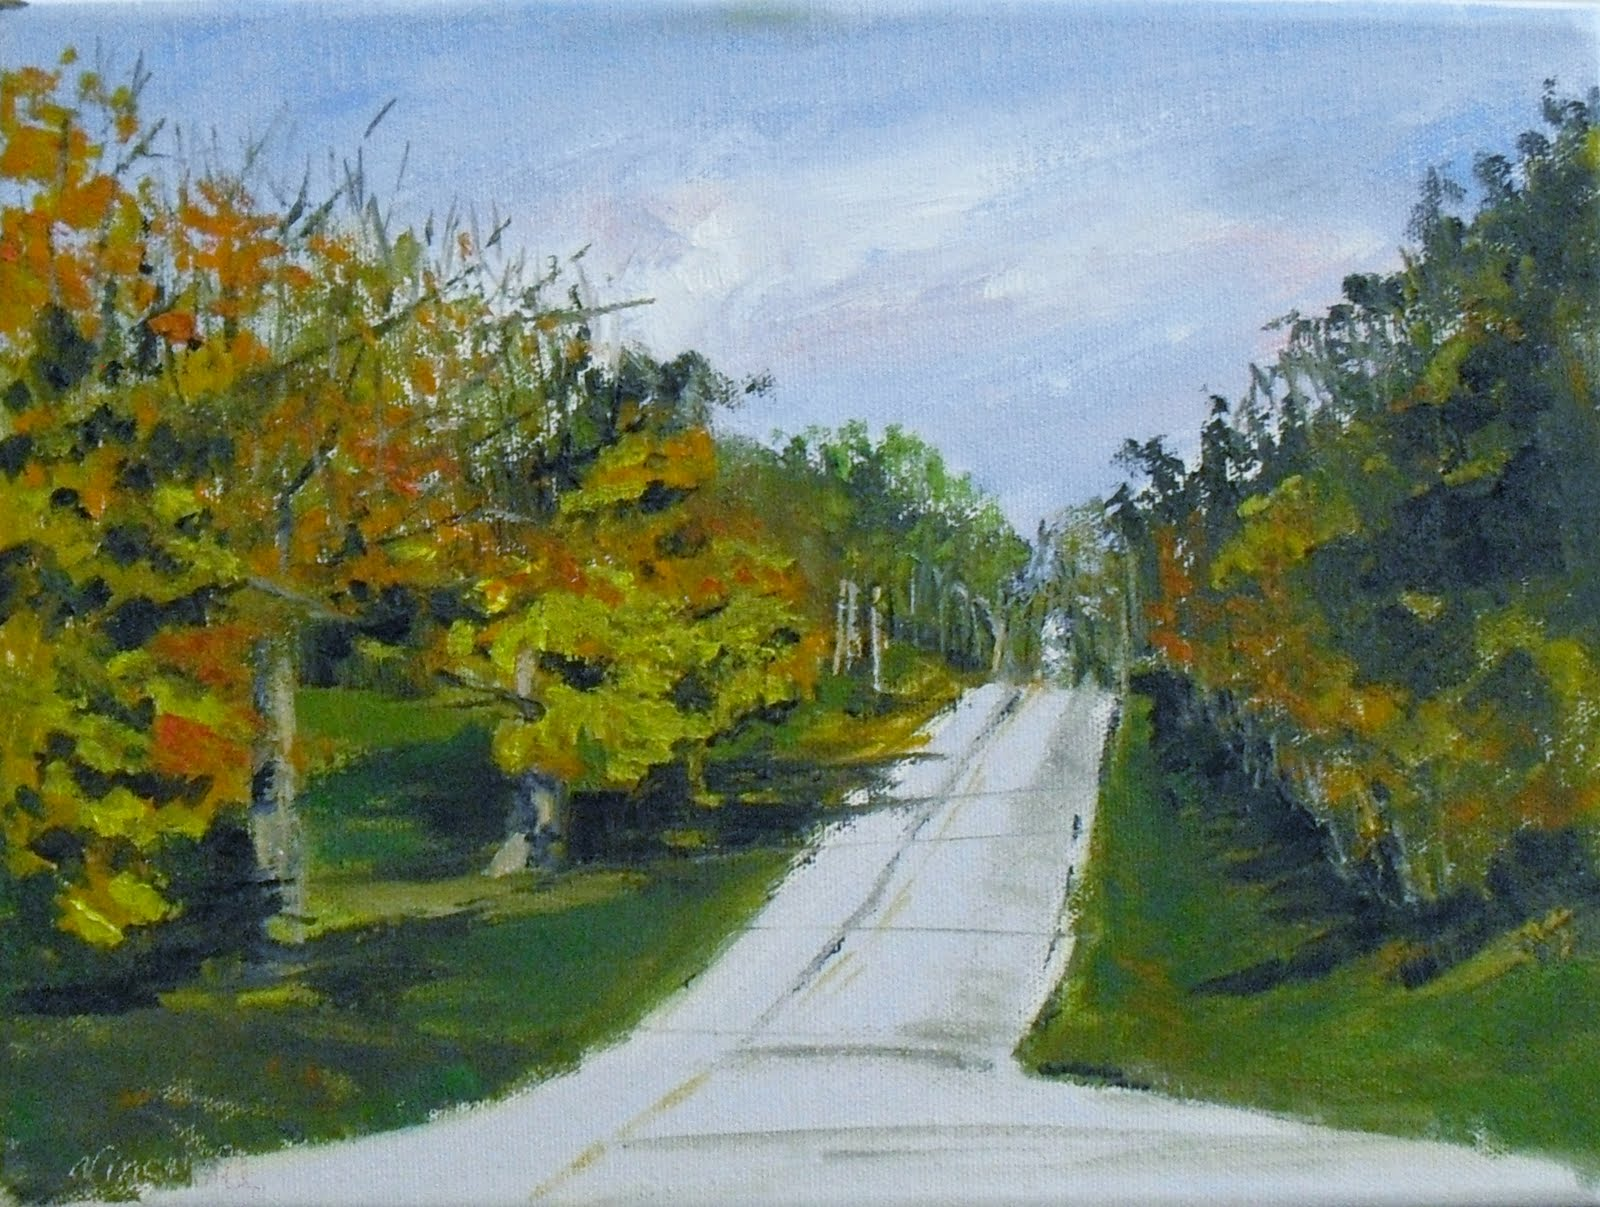 Brush Rd in the Afternoon  9x12 oil on canvas original fine art by Vincenza Harrity